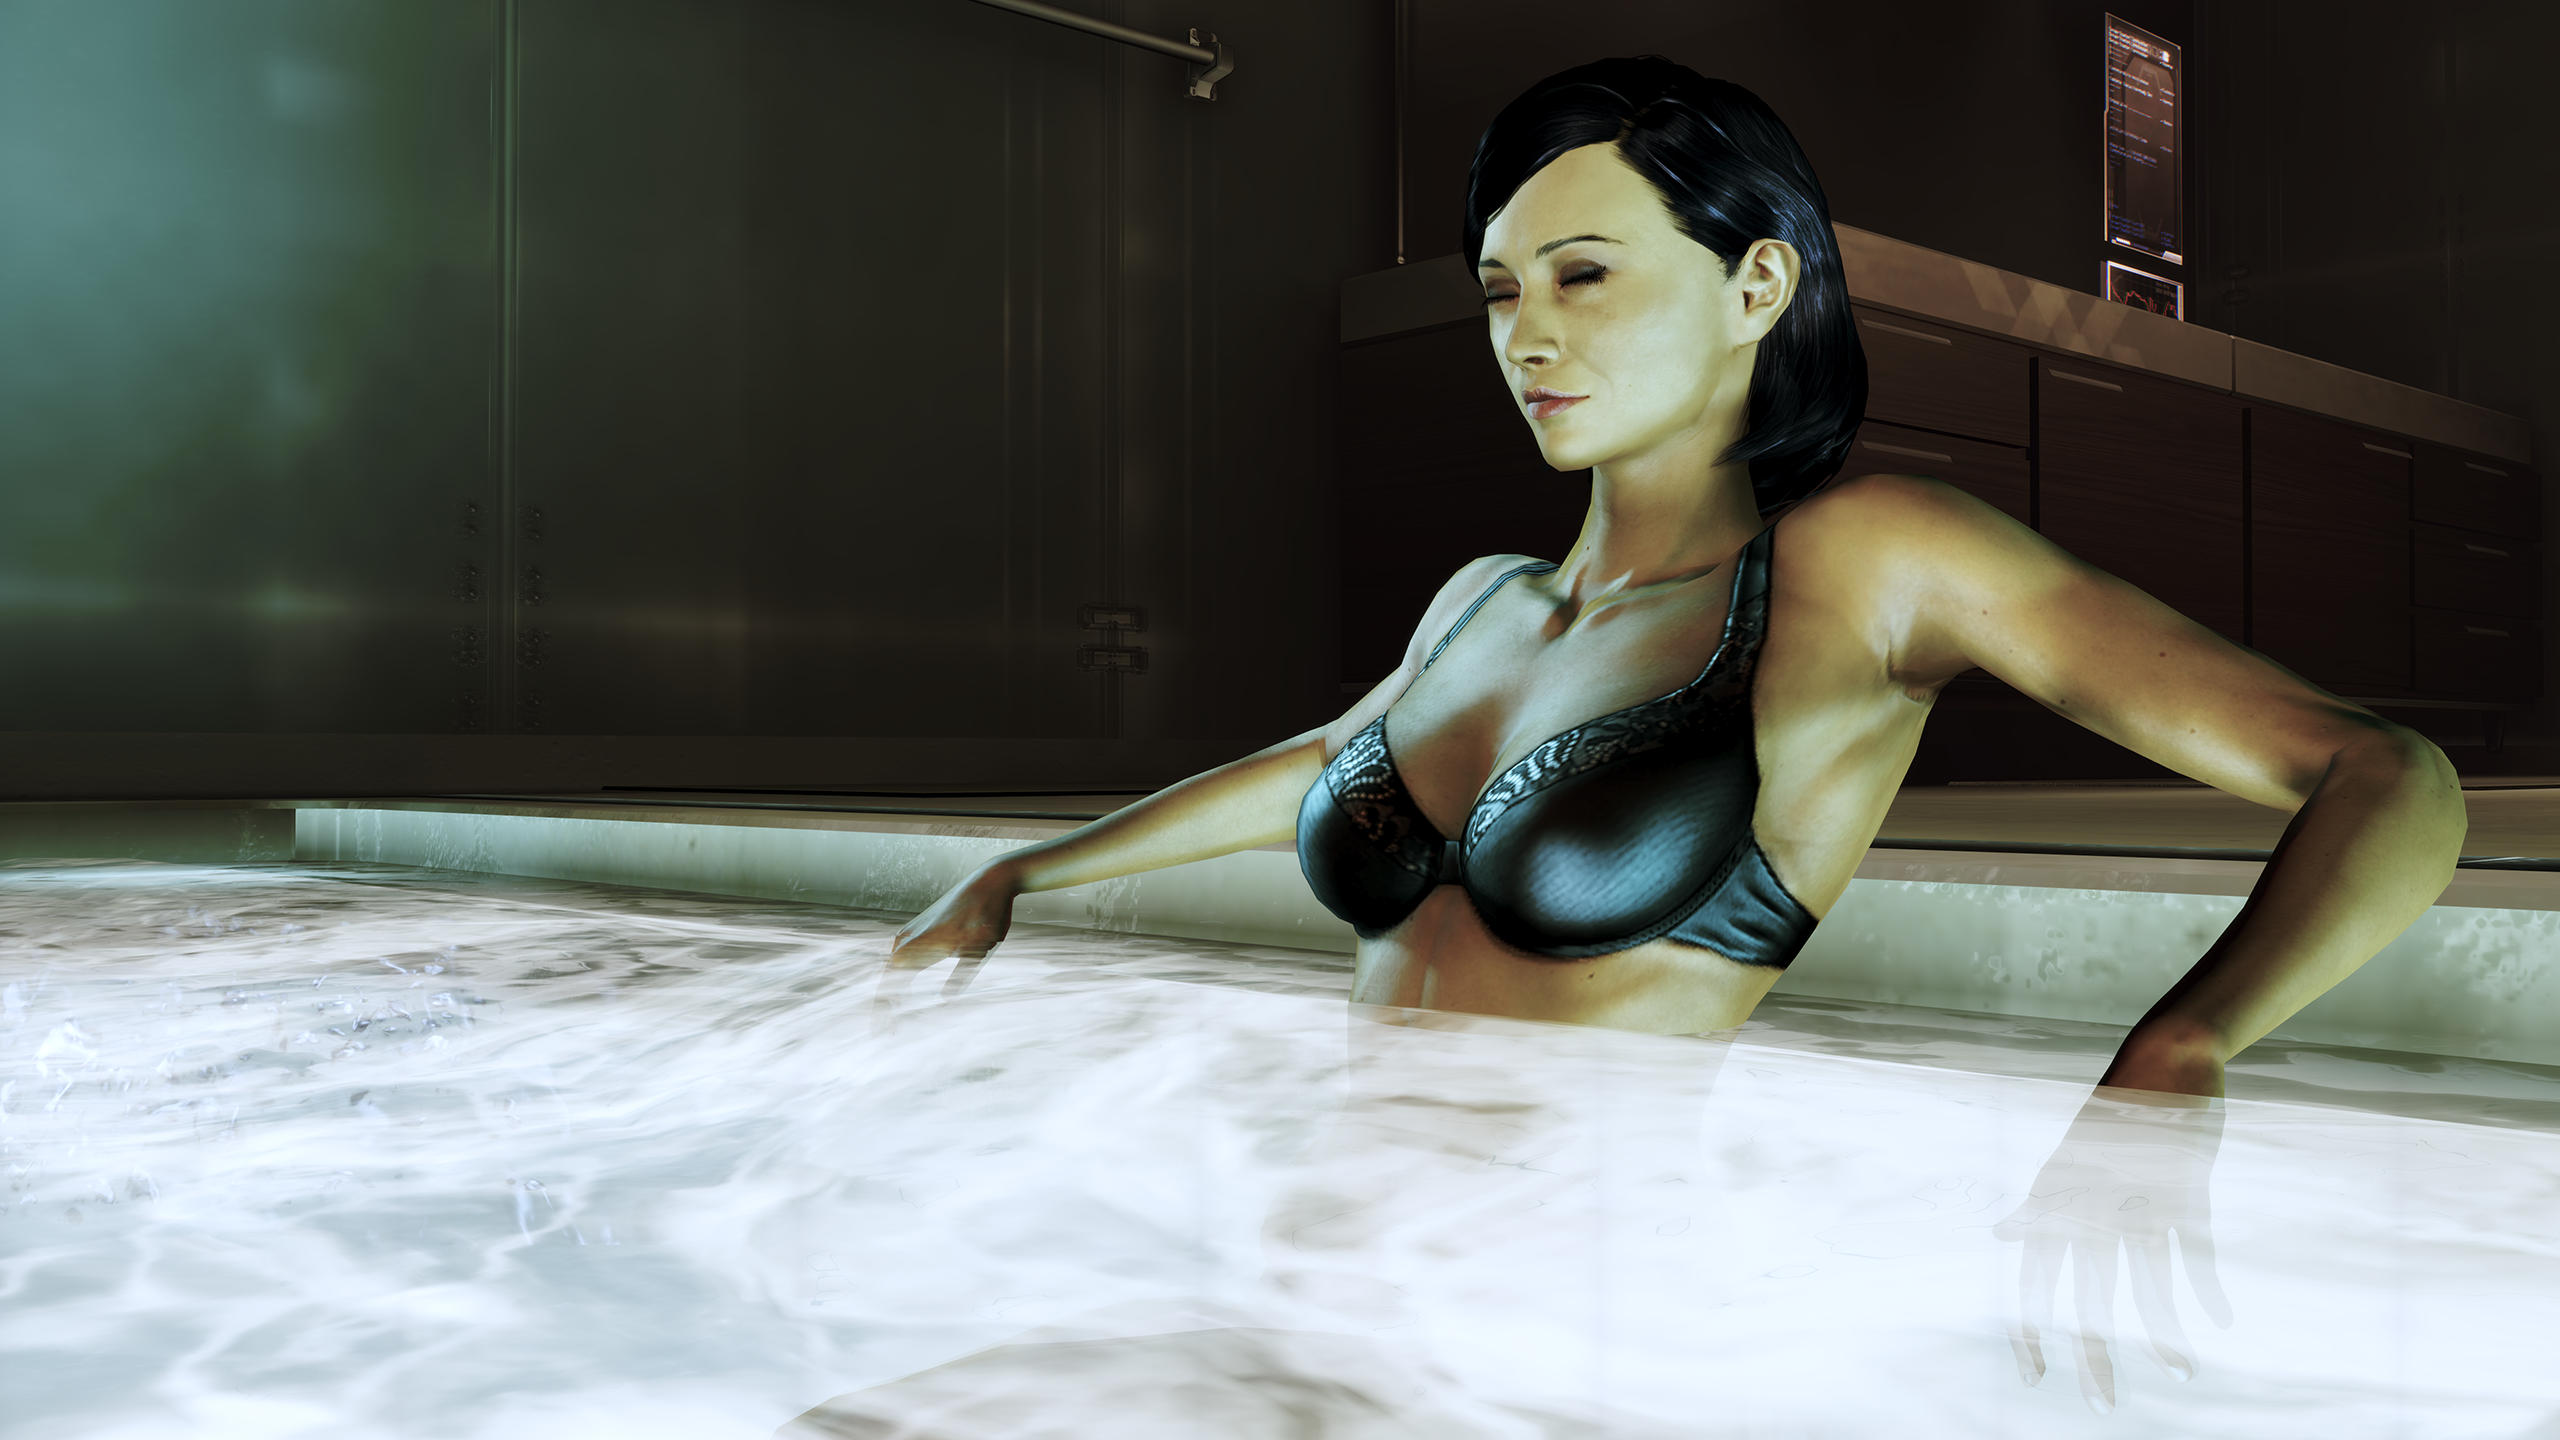 All the girls in masseffect 3d pics porn toons